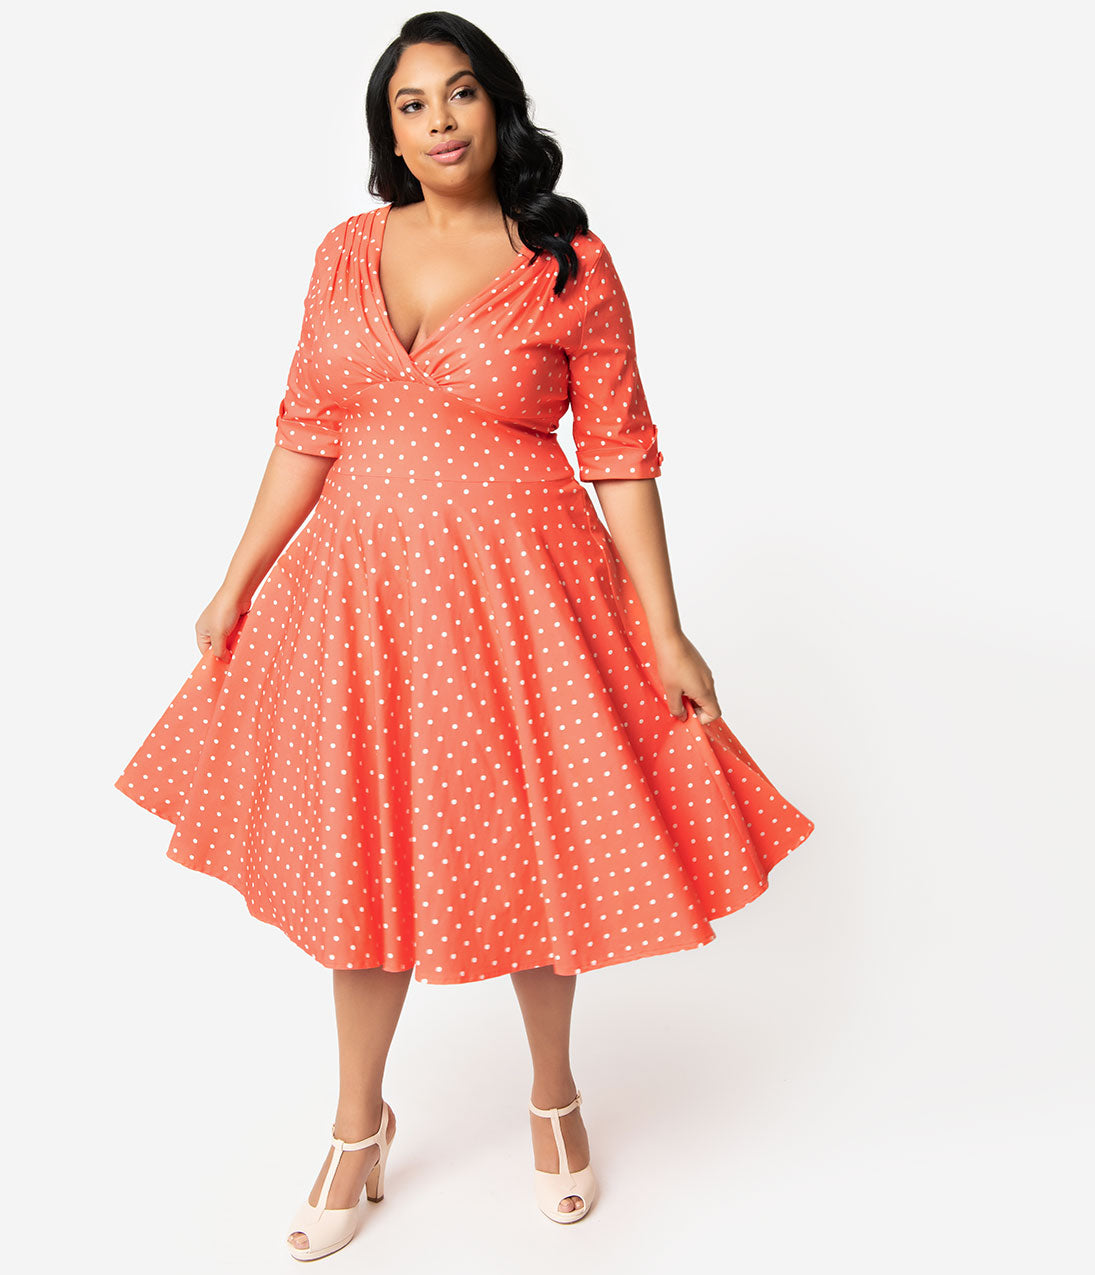 Unique Vintage + Pantone Plus Size 1950s Living Coral   White Dot Delores  Swing Dress with fd78420c3